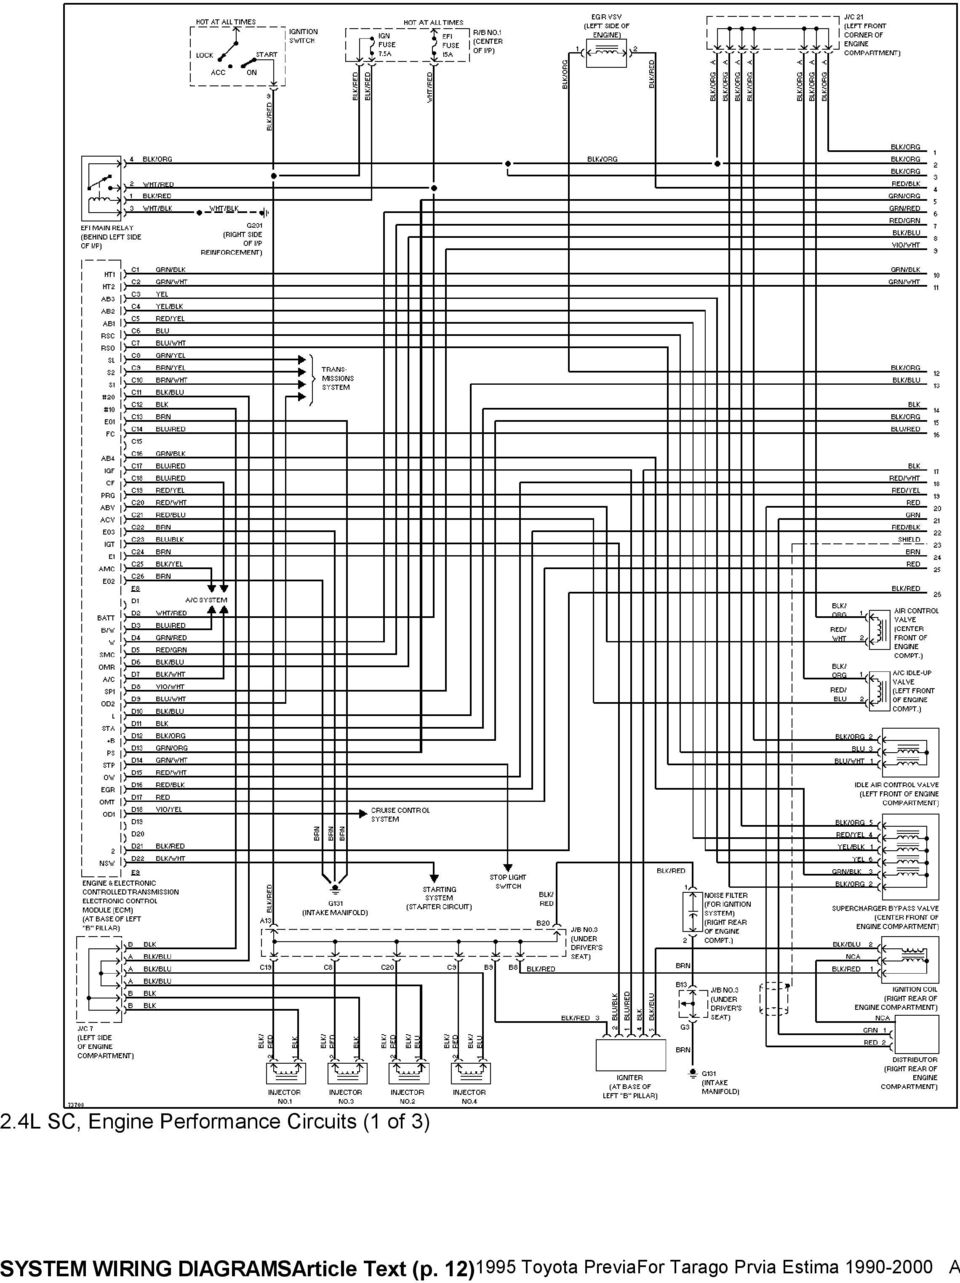 Toyota 2 4l Engine Diagram Wiring Library 13 24l Sc 1995 System Diagrams